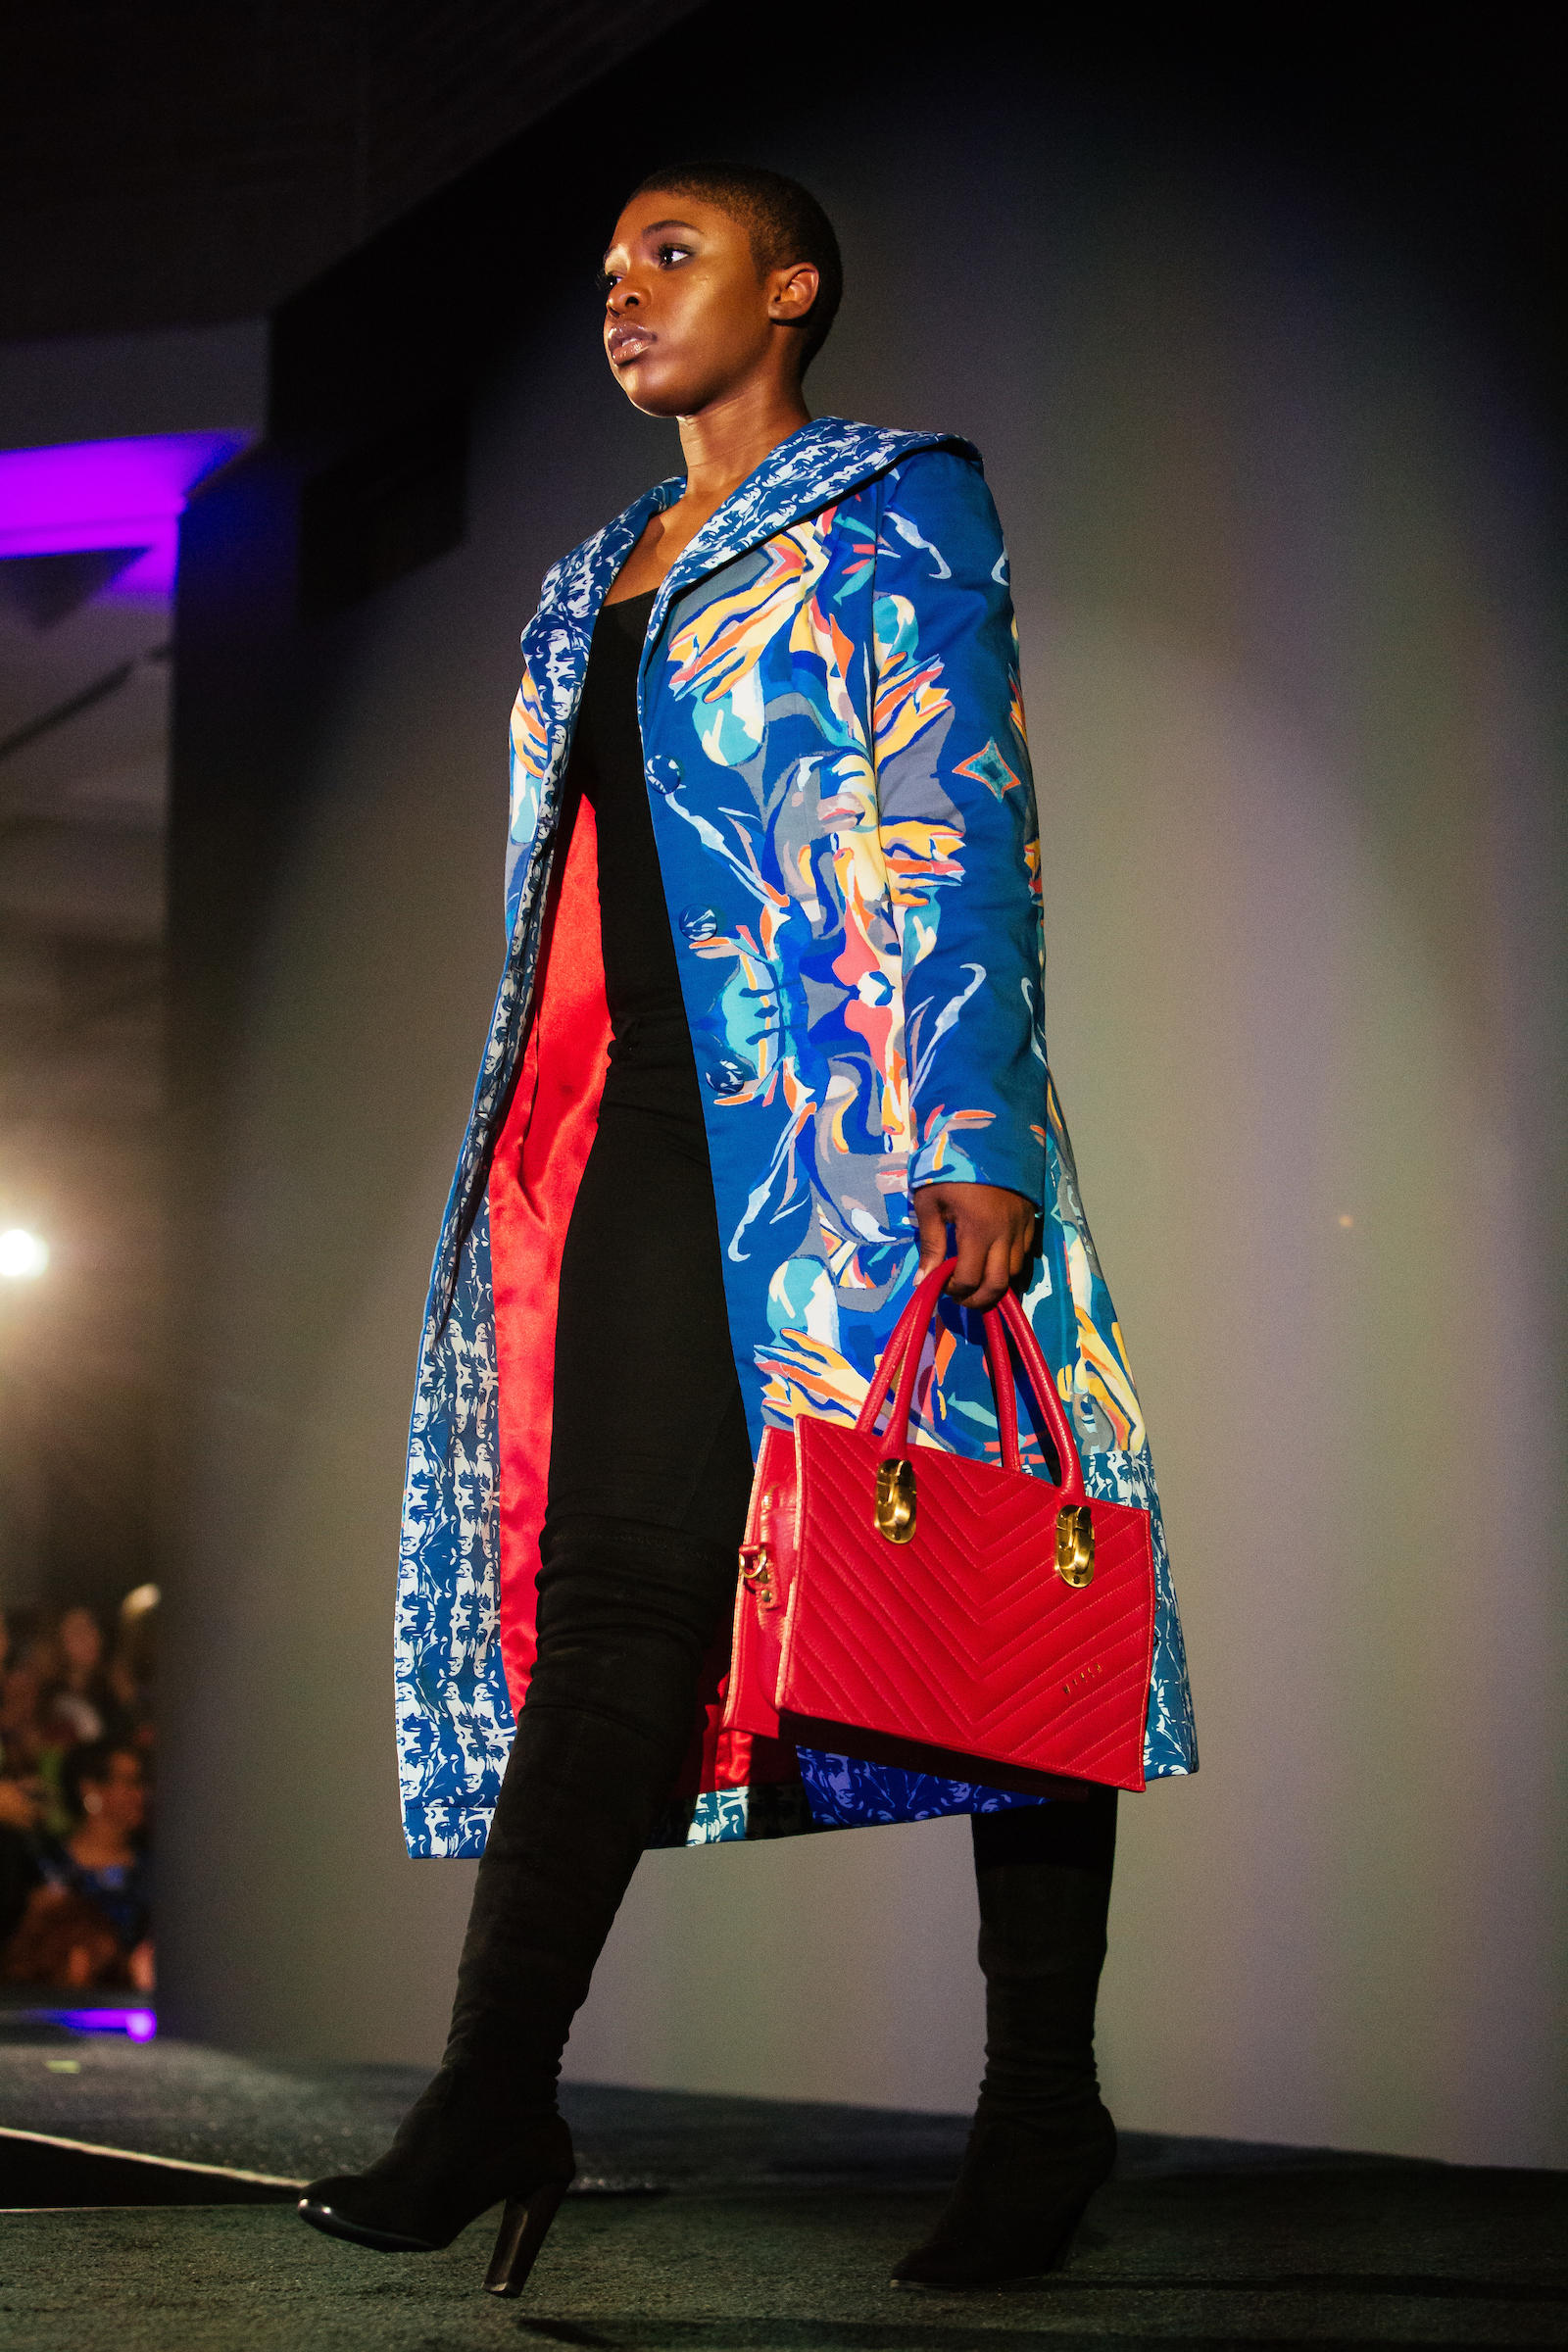 Ebony fashion fair showcasing race culture and style wunc for Runway fashion show video